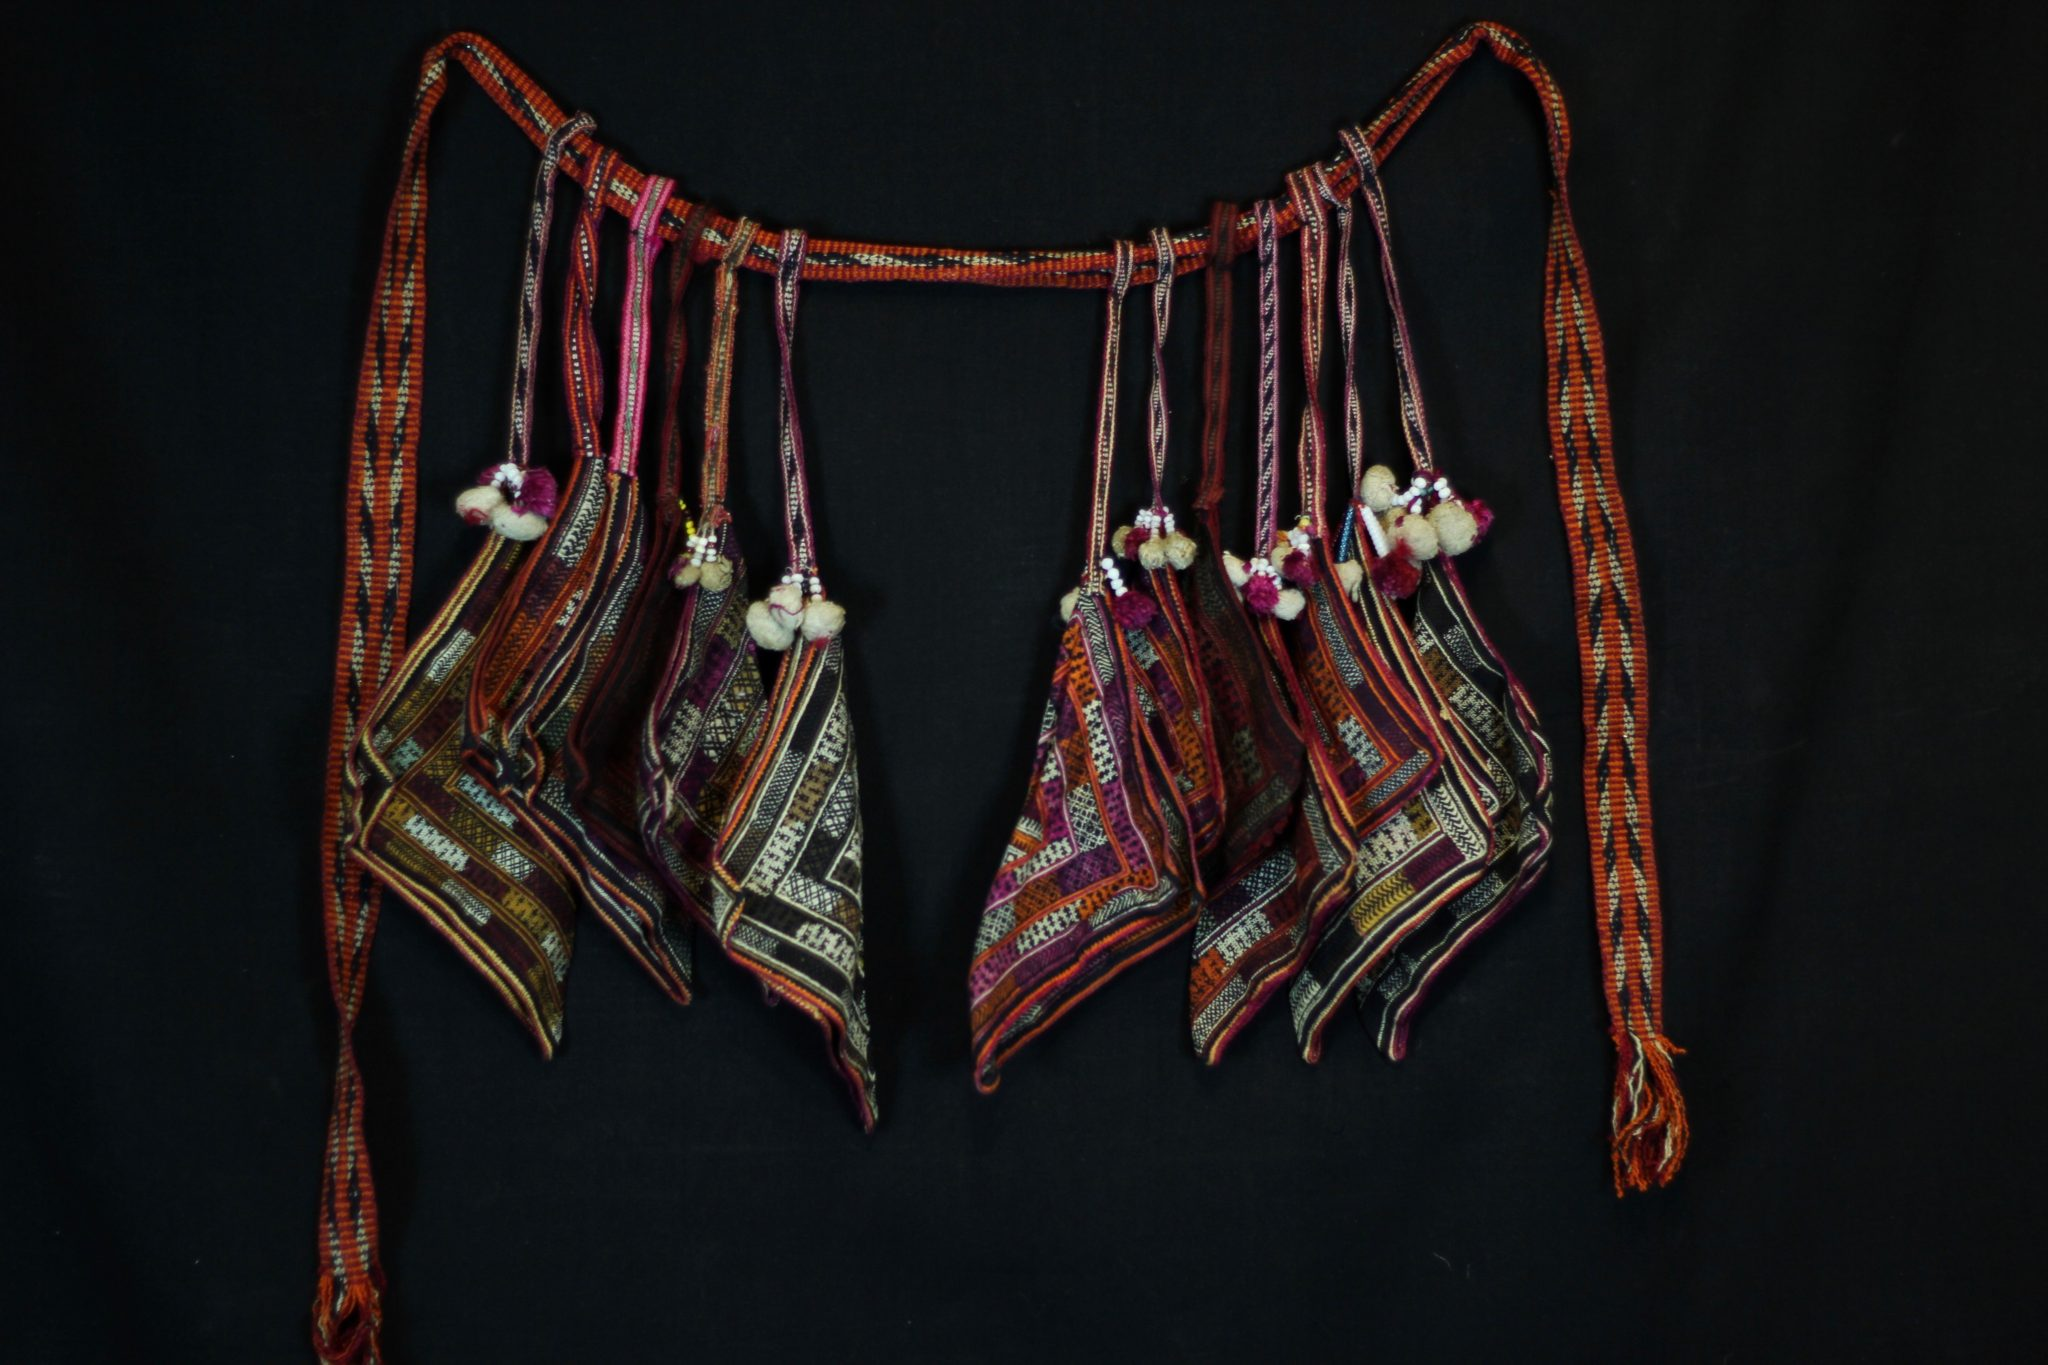 "Shamanic Belt with full set of 12 Handkerchiefs, Da Bac district, Hoa Binh province, Vietnam, Tight Trouser Dao people, Early to mid 20th c. Cotton, hand embroidered with silk. Worn by shaman while performing religious rituals. A complete belt would have a minimum of 12 handkerchiefs (embroidered squares). The belt is passed down through generations, revealing its history. If a shaman has two sons or apprentices, he will spit the belt and the new shaman's wife will make the other necessary handkerchiefs. 75"" x 18"" x 2 ½"", $775."